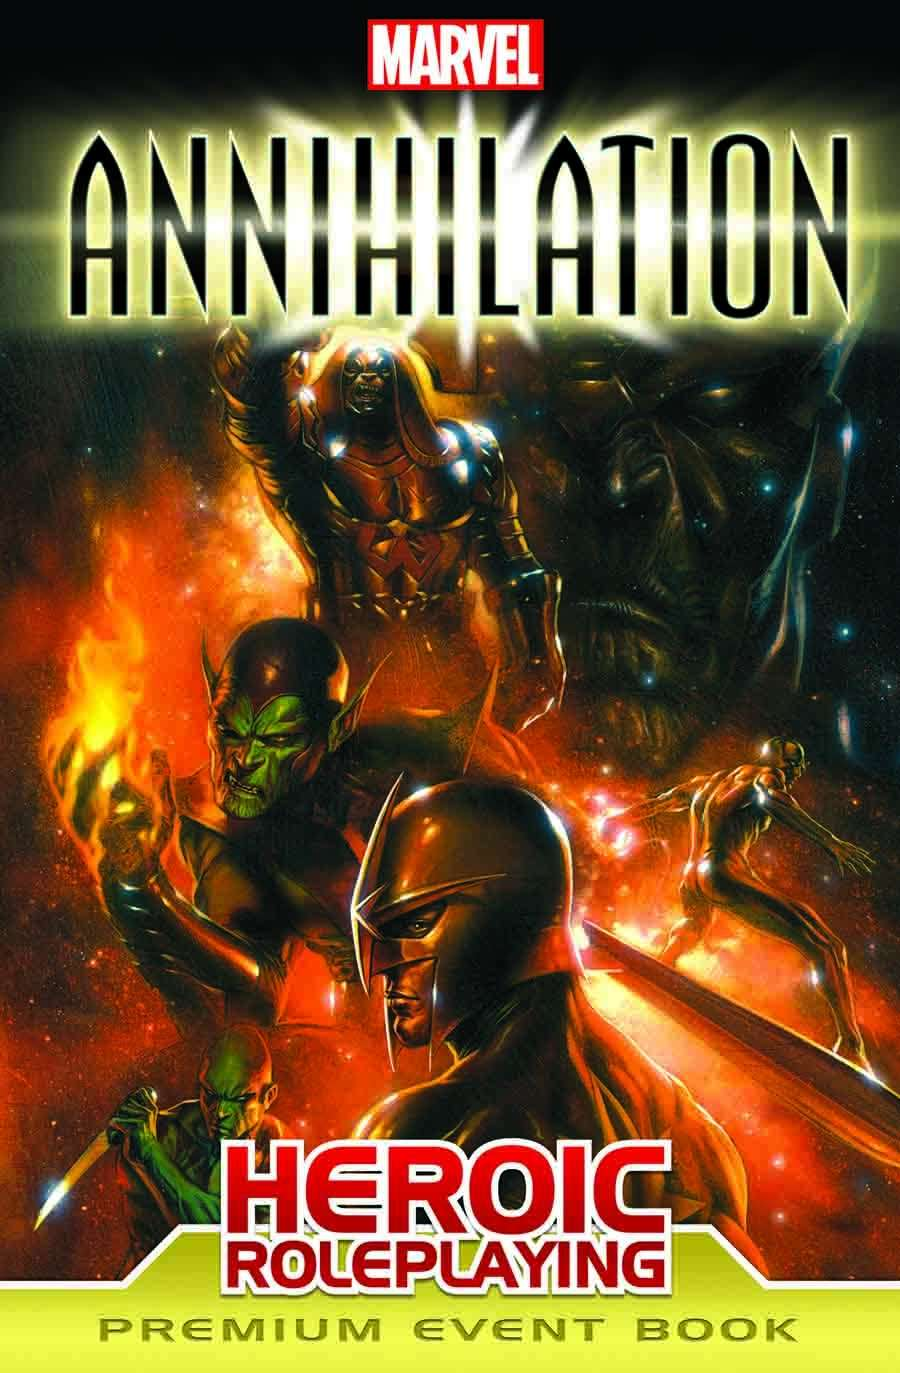 Marvel Heroic Roleplaying: Annihilation Event Book Premium Margaret Weis Productions and Various